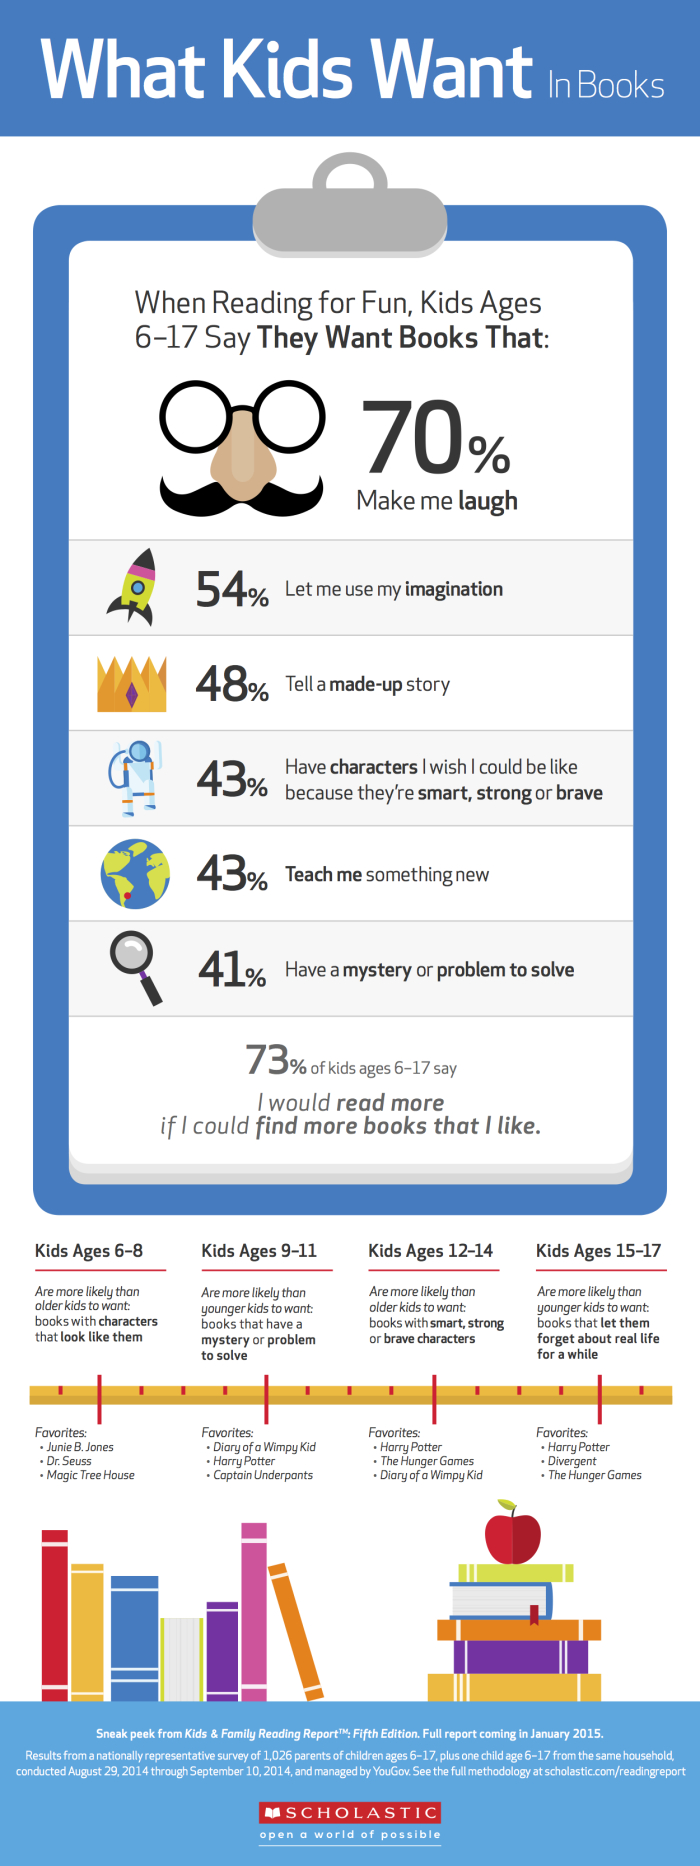 scholastic-kids-reading-infographic